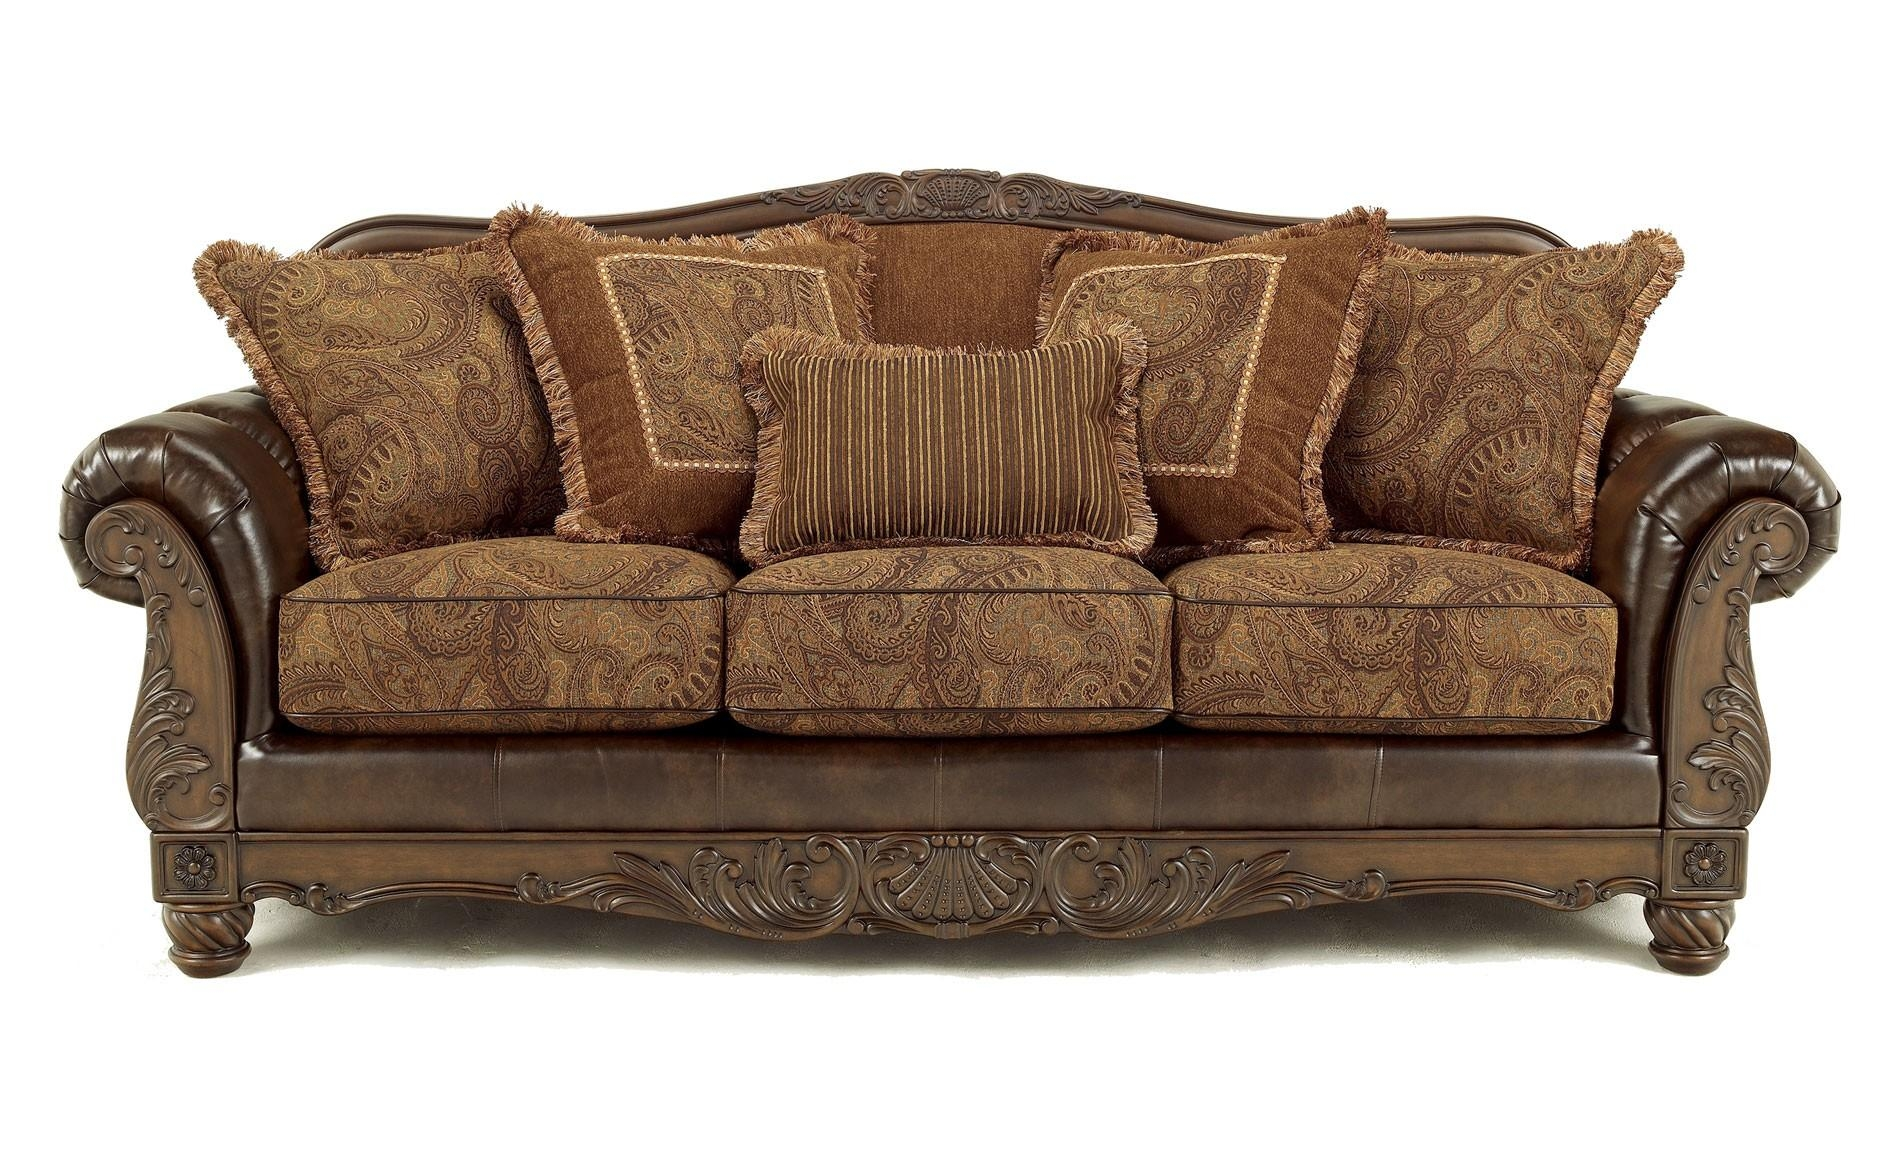 Old Fashioned Sofa Styles Know Your Antique Couch Sofa And Settee In Old Fashioned Sofas (View 4 of 20)